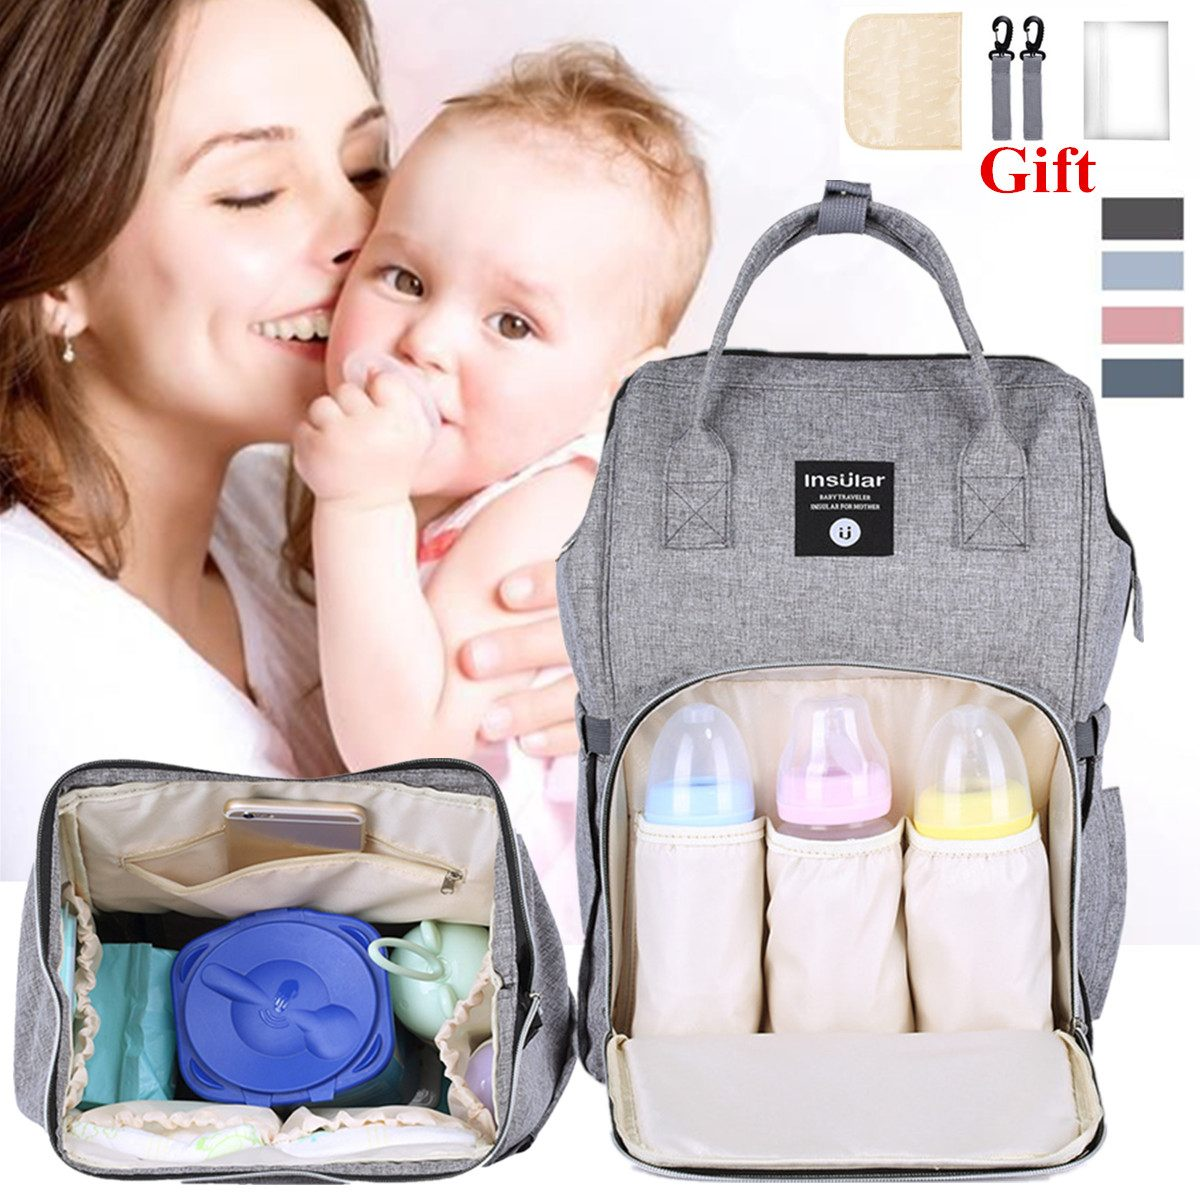 Nappy Backpack Bag Mummy Large Capacity Stroller Bag Mom Baby Multi-function Waterproof Outdoor Travel Diaper Bags Nursing Bag